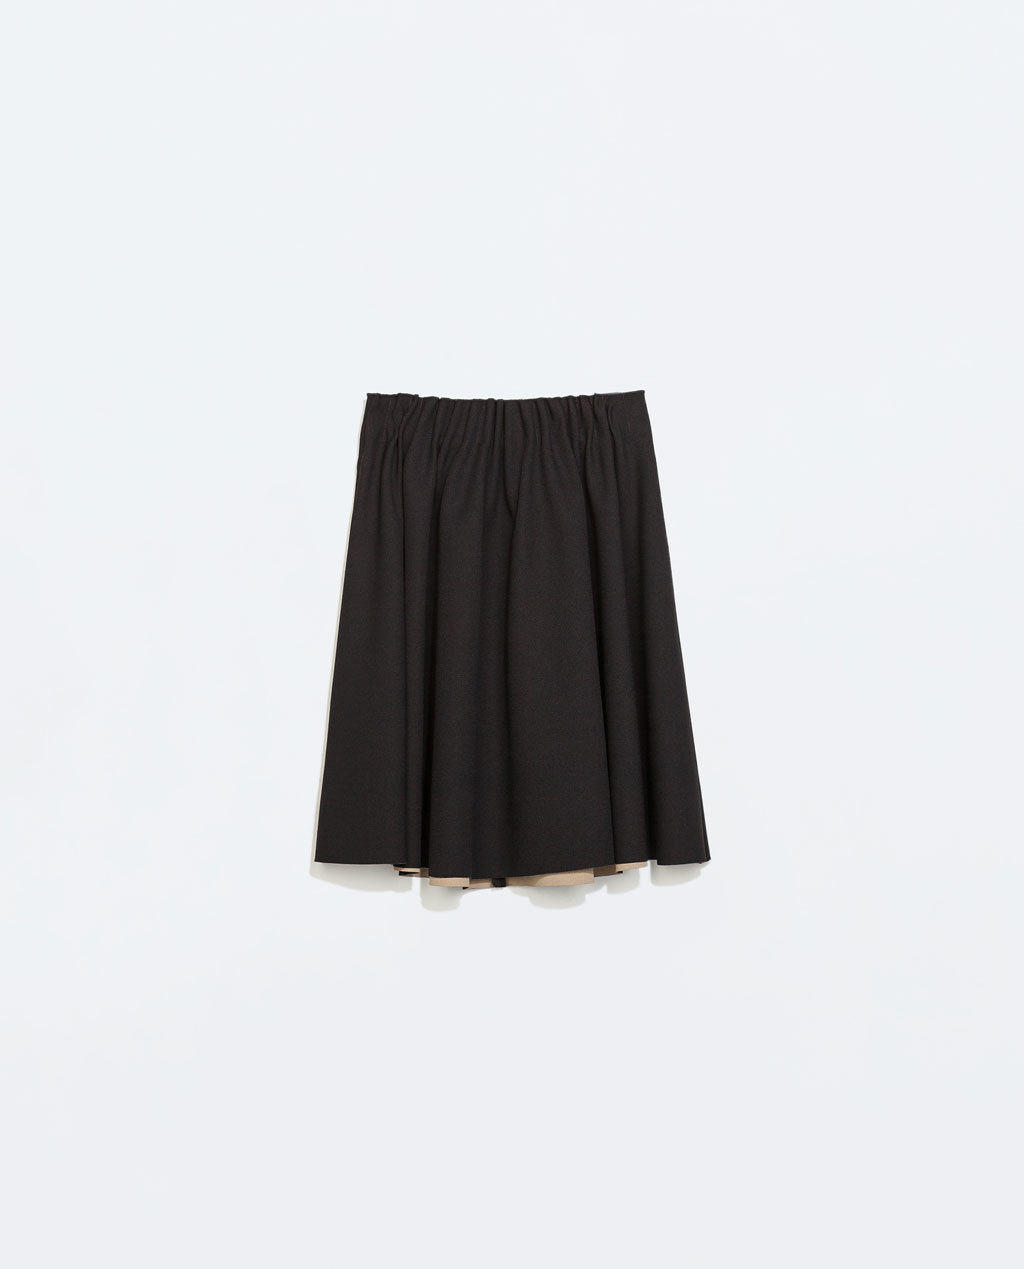 Skirt With Elastic Waist - pattern: plain; style: full/prom skirt; fit: loose/voluminous; waist detail: elasticated waist; waist: mid/regular rise; predominant colour: black; occasions: casual, evening, creative work; length: just above the knee; fibres: polyester/polyamide - 100%; hip detail: soft pleats at hip/draping at hip/flared at hip; pattern type: fabric; texture group: other - light to midweight; trends: sixties, minimal sleek; season: a/w 2014